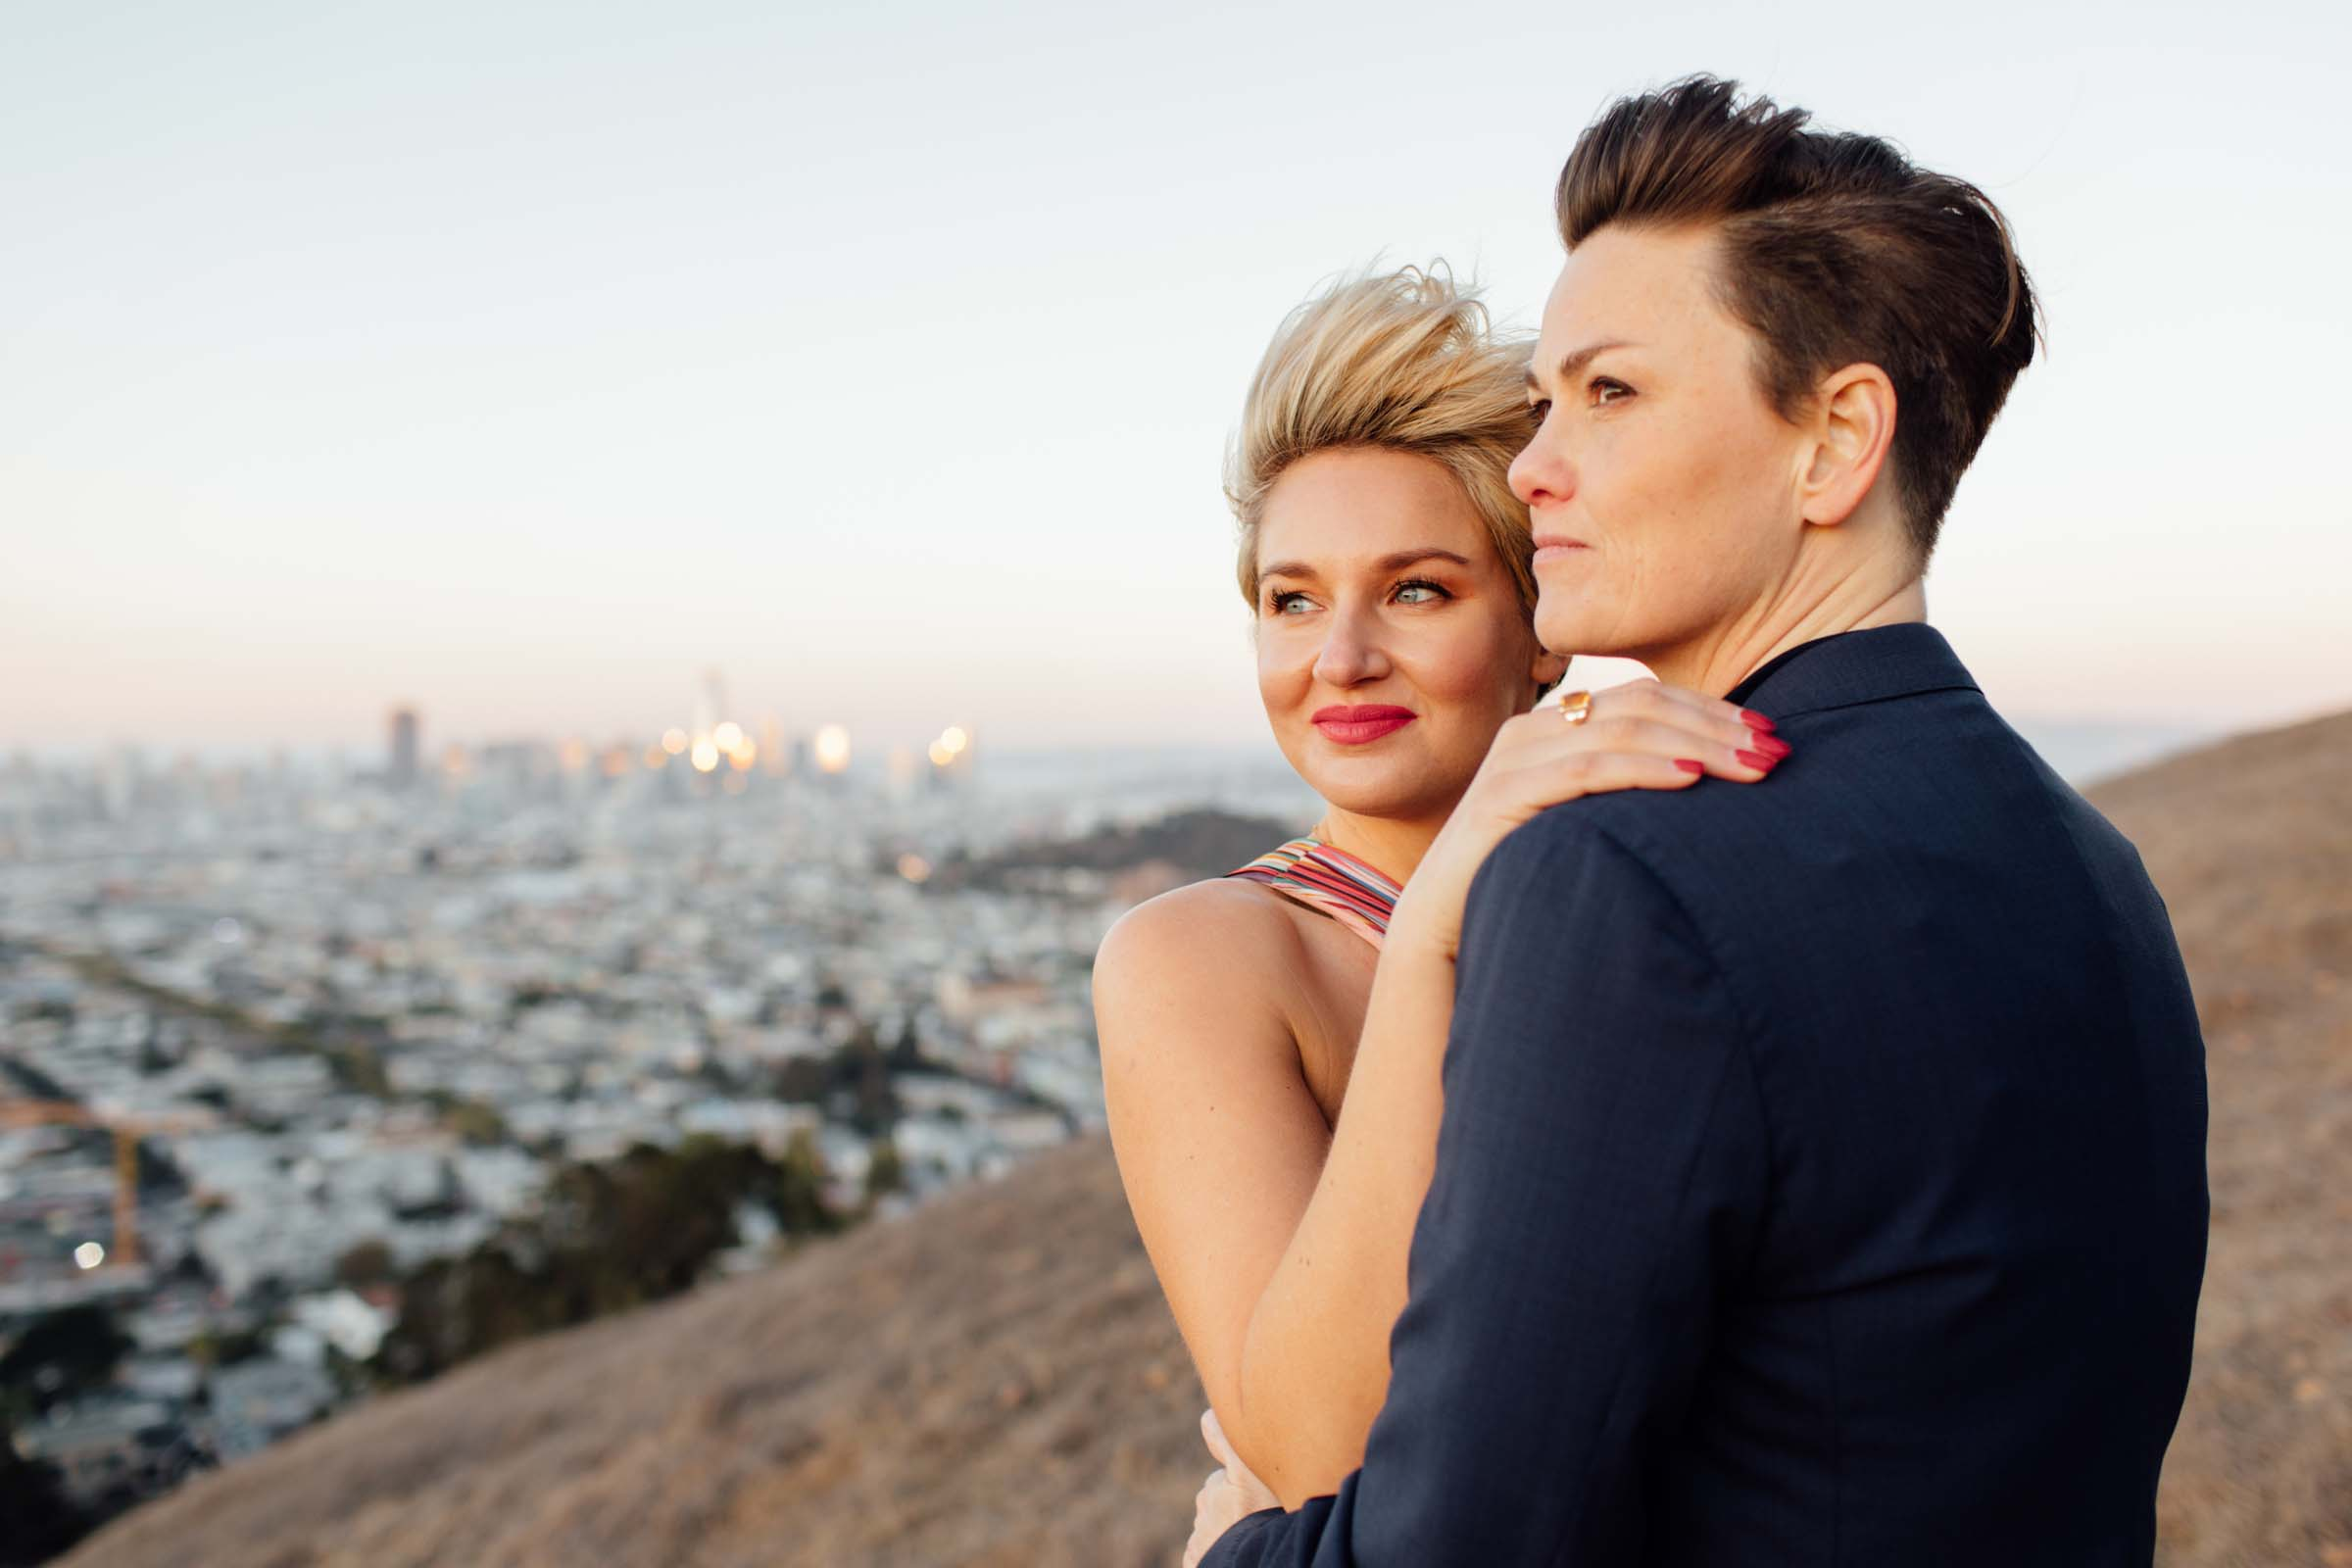 Simone Anne San-Francisco lesbian gay couple Engagement proposal Dancing With Her magazine